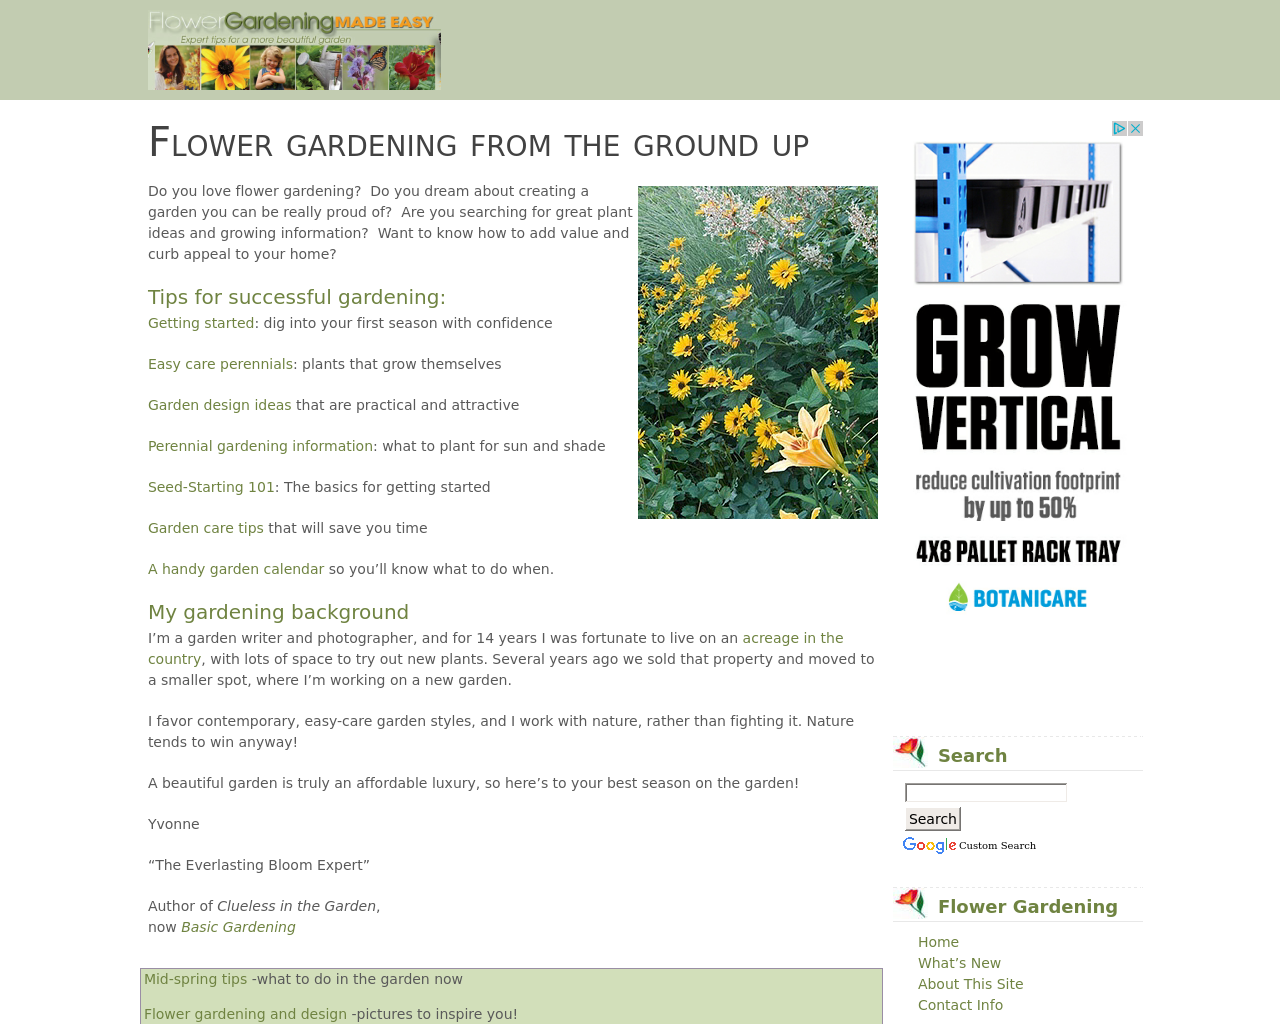 Flower-Gardening-Made-Easy-Advertising-Reviews-Pricing